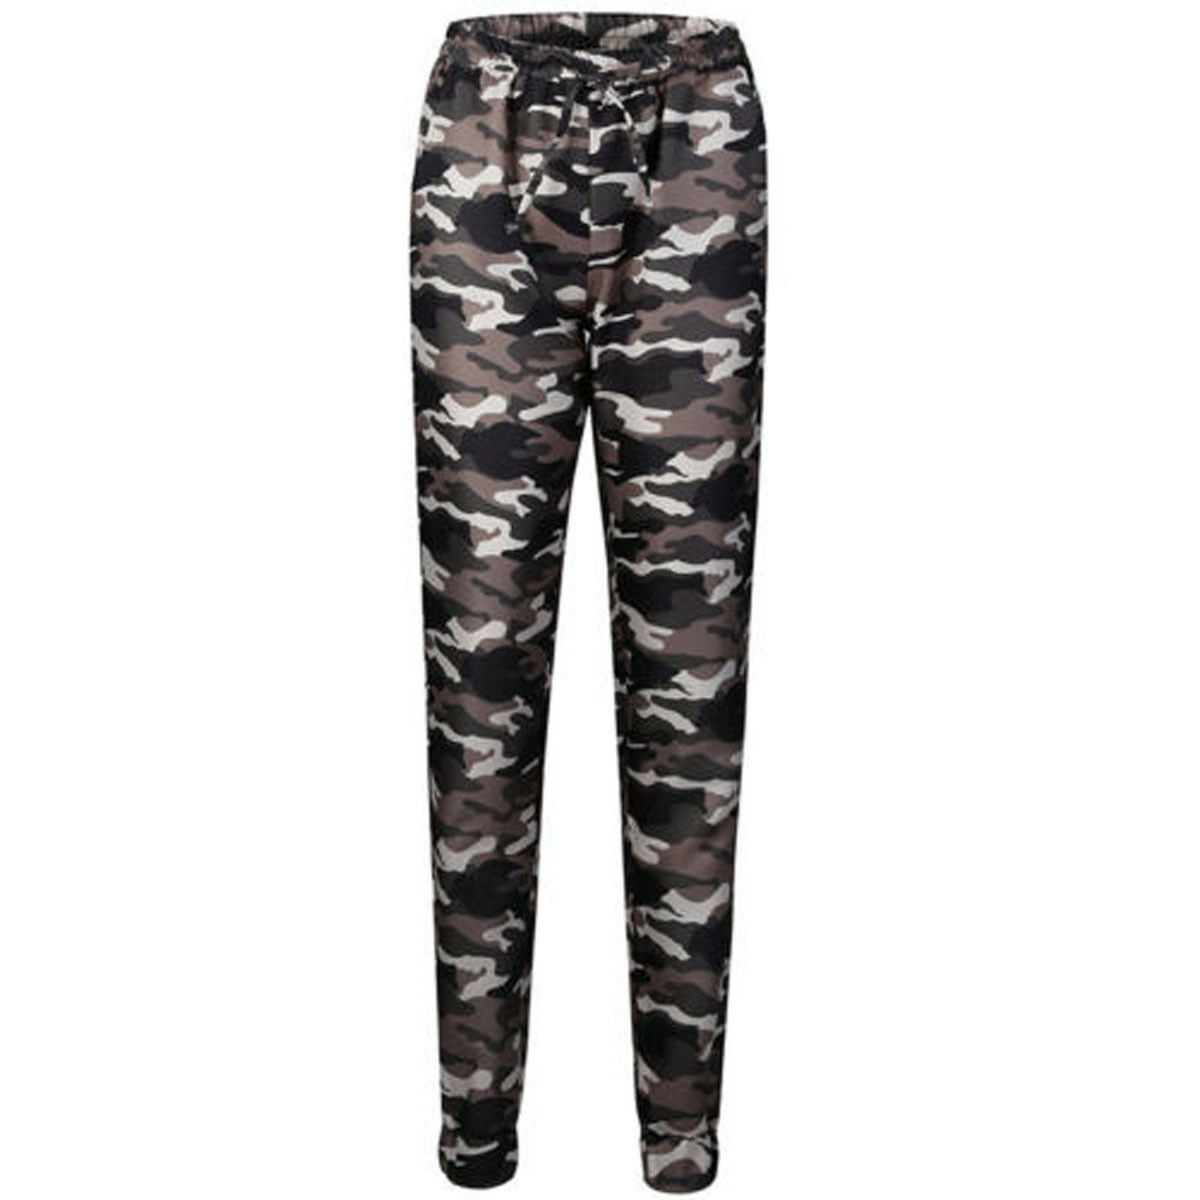 1pc Autumn Outdoor Camping Womens Camo Trousers Casual Hip-hop Military Army Combat Camouflage Pants S-2XL Plus size pants hot 23